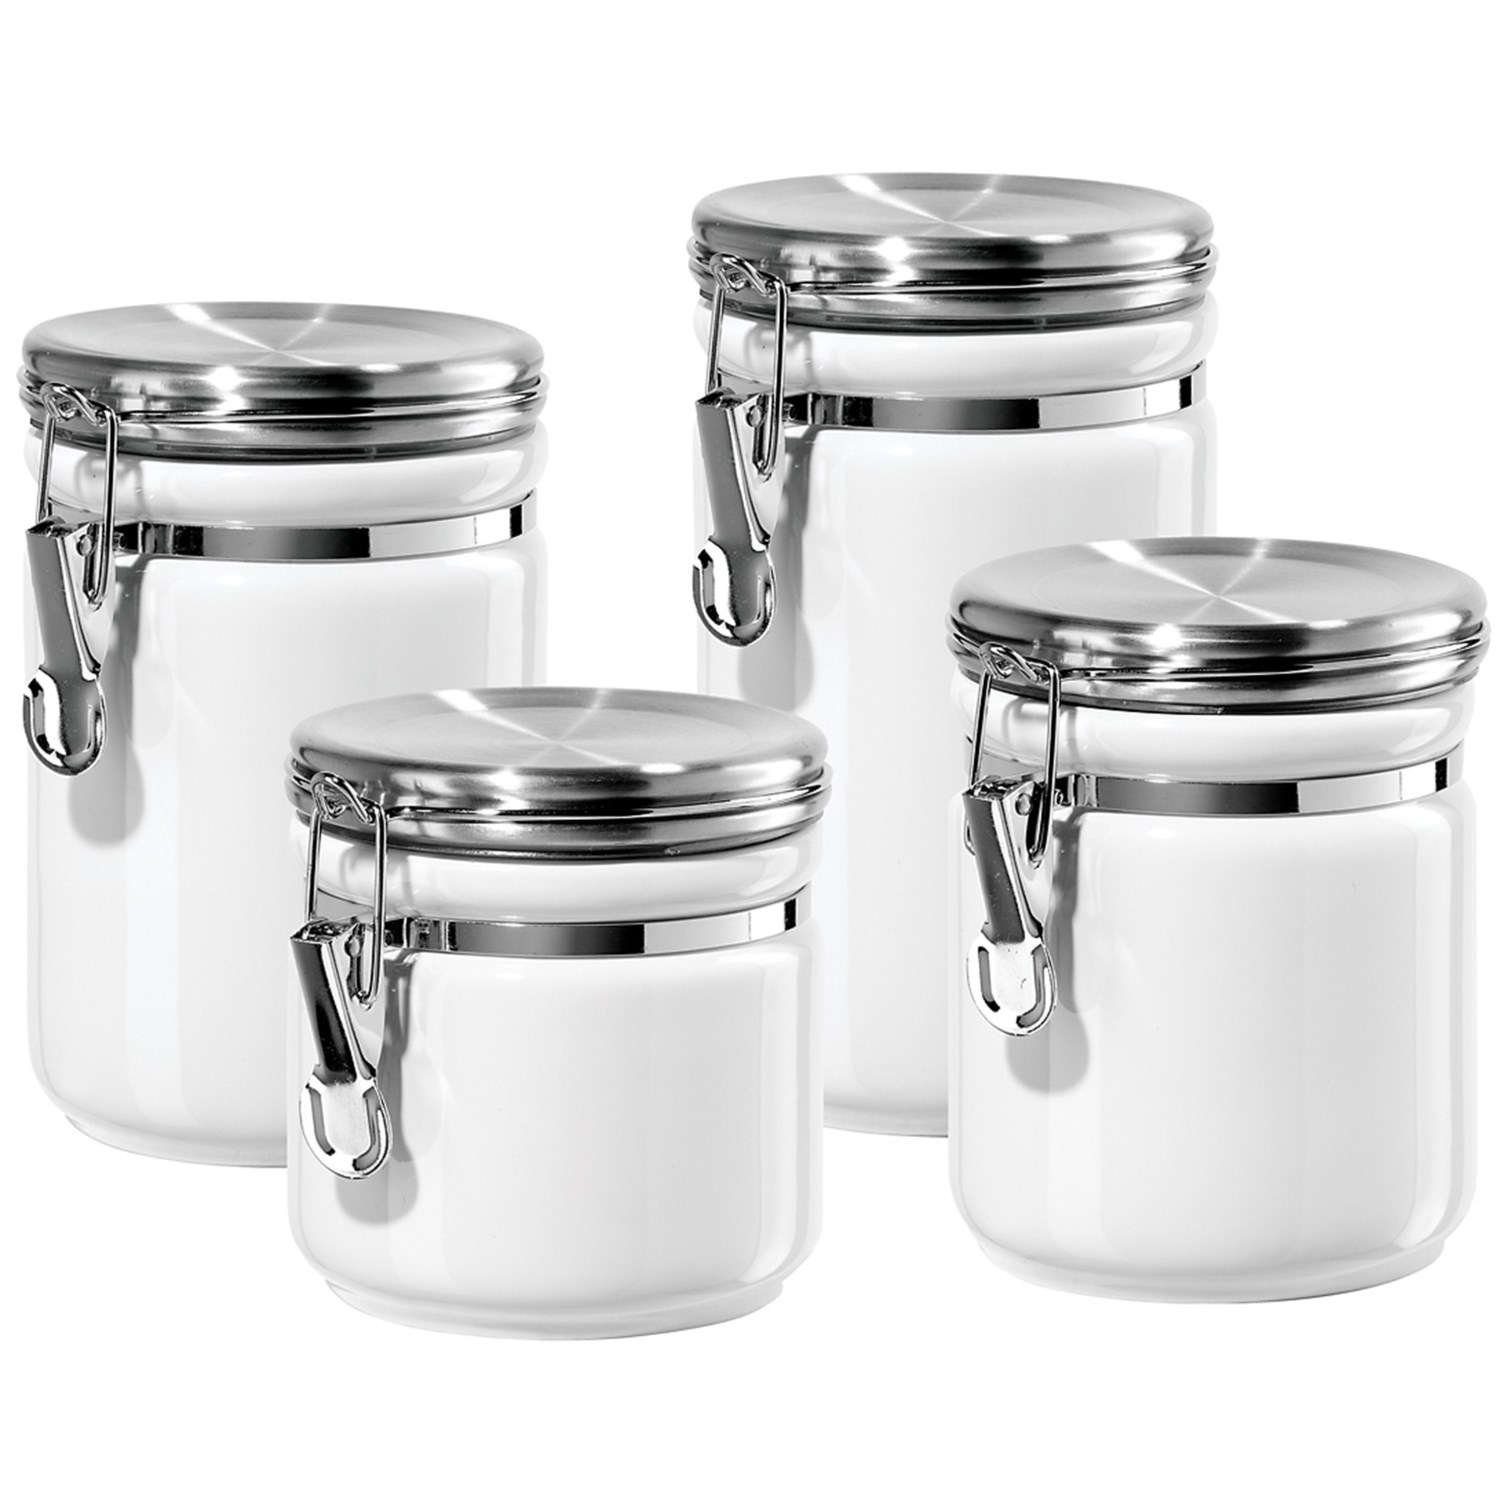 Oggi Ceramic Canister Set With Stainless Steel Lids 4